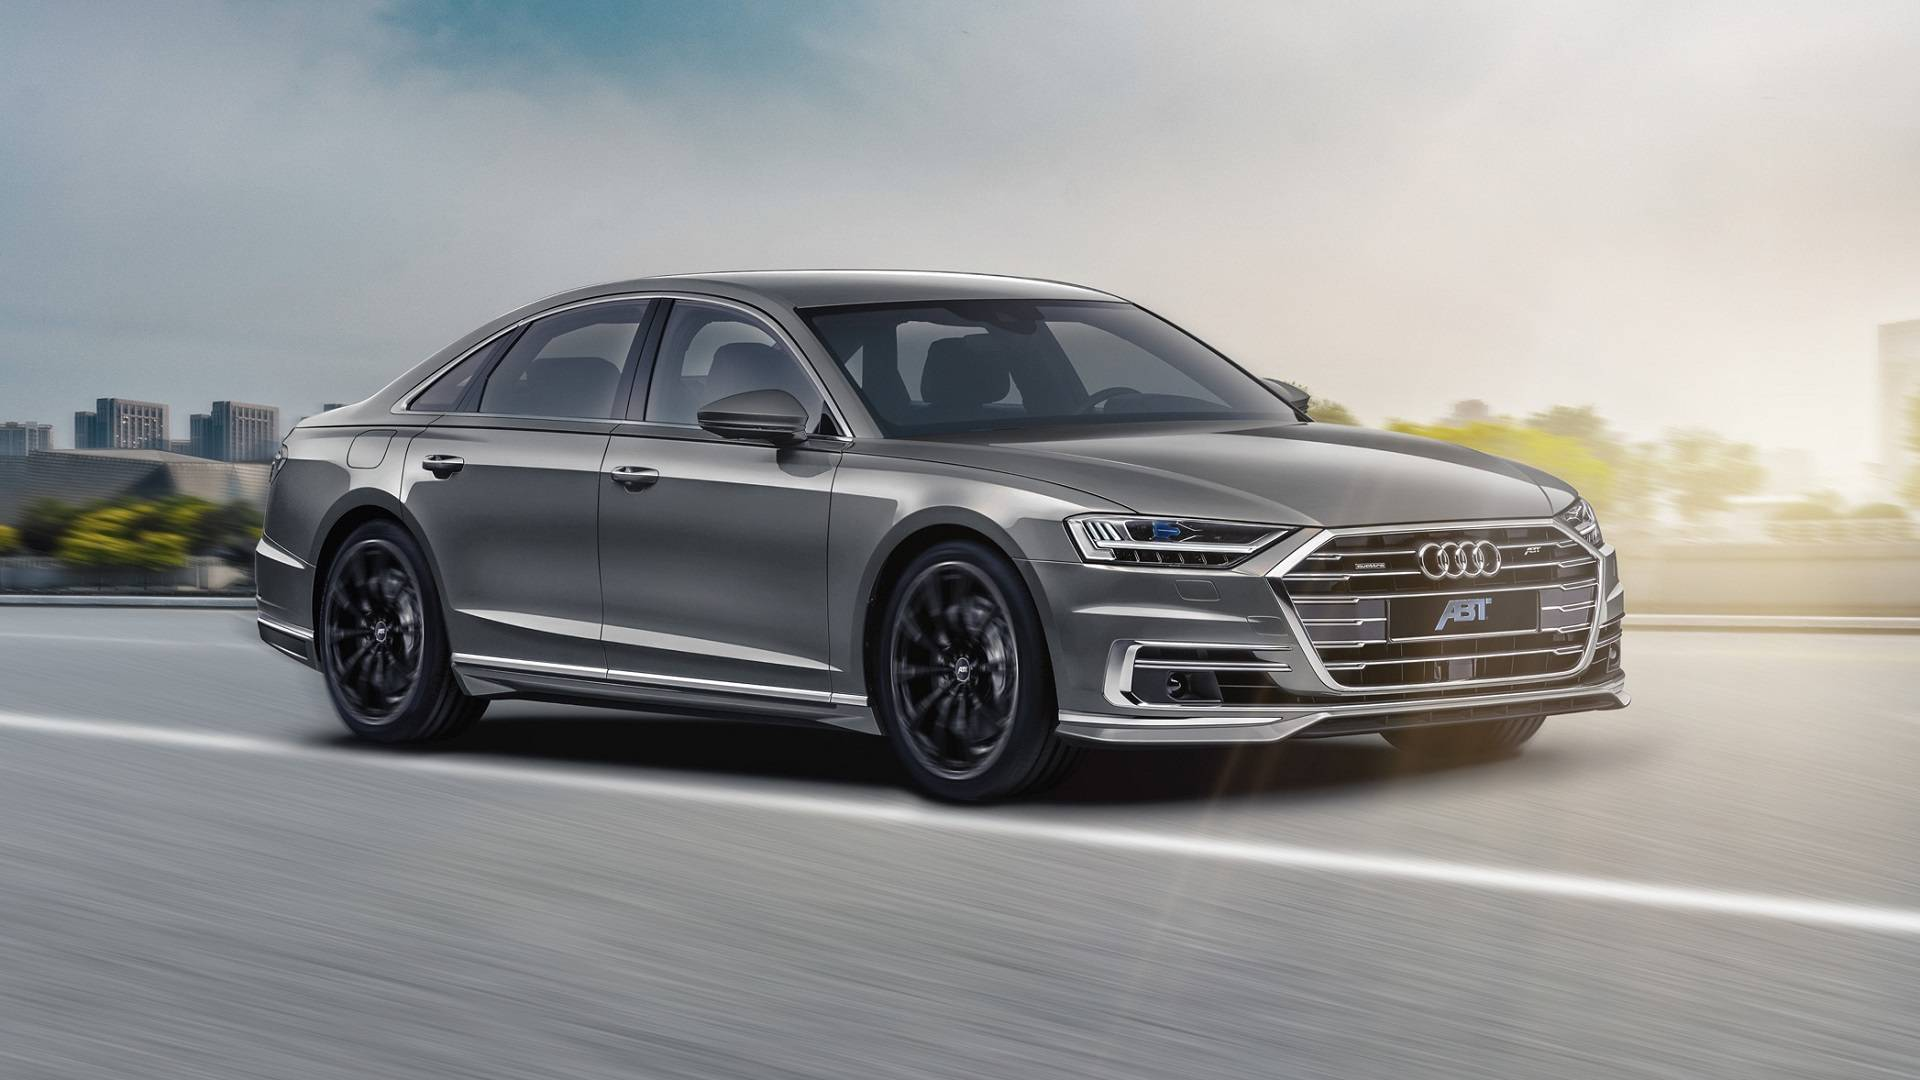 Audi A Sport Unveiled With S Looks And TDI Economy - Audi a8 sport